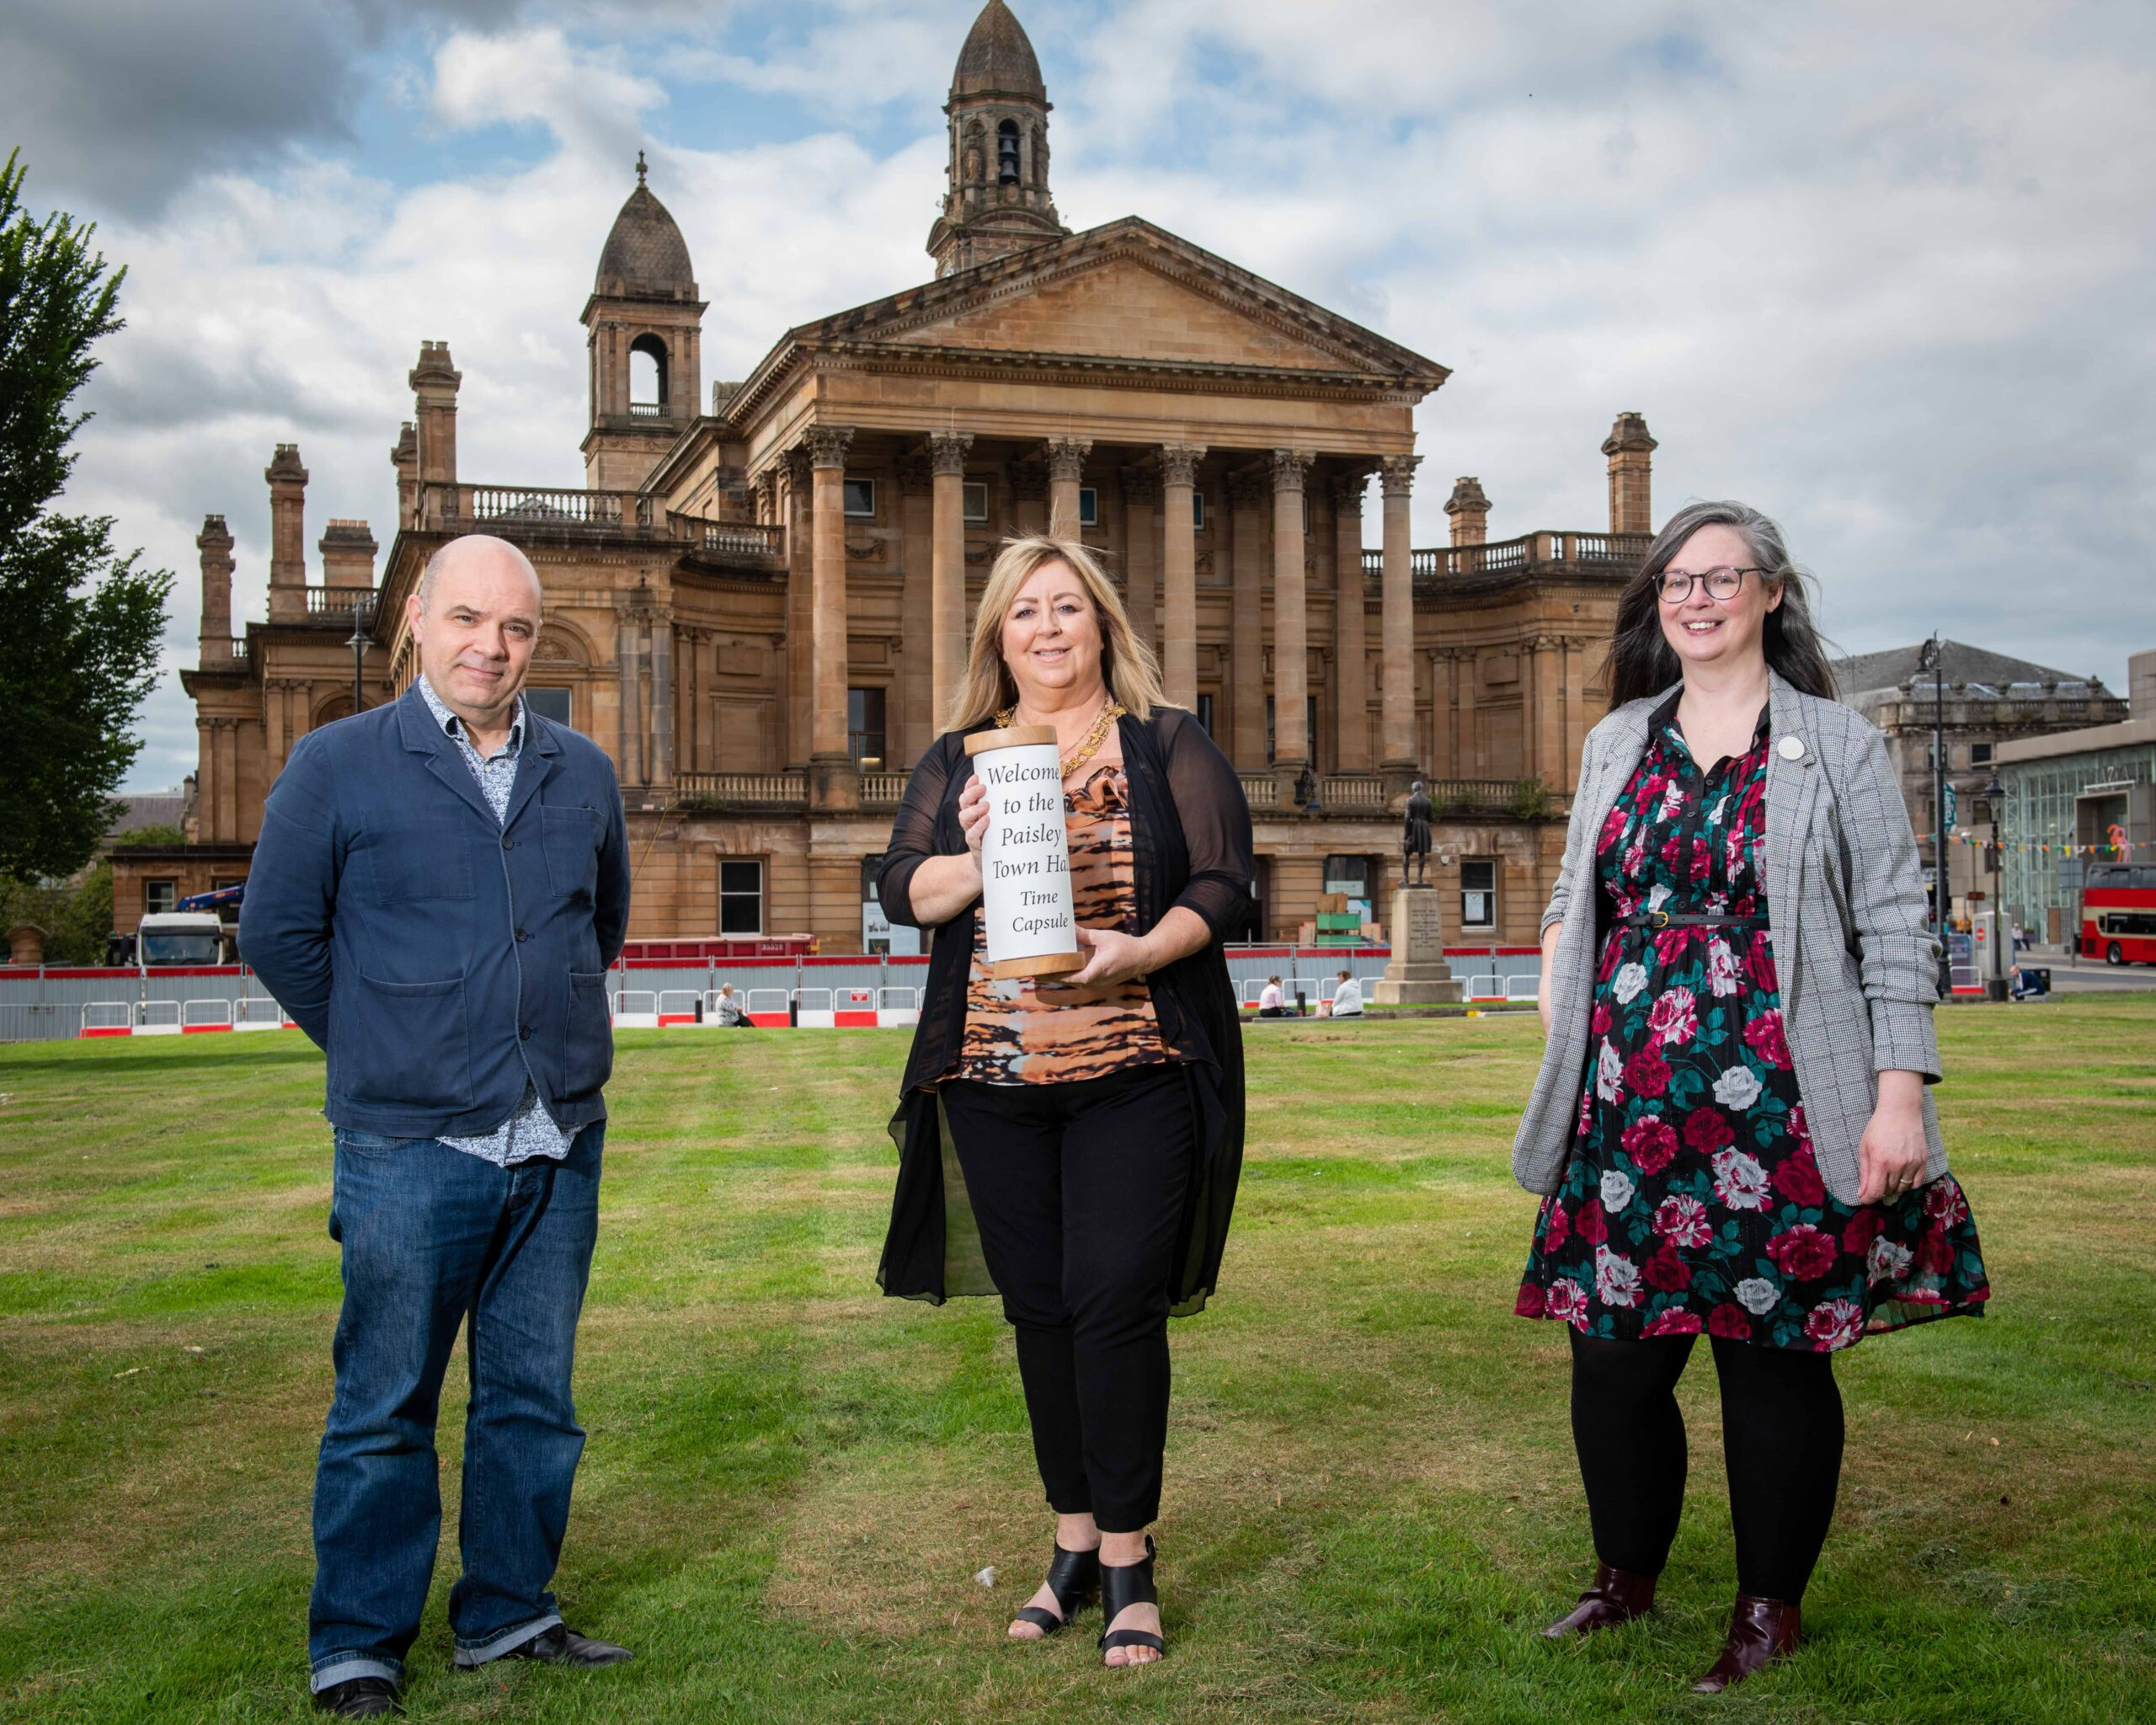 Artist Kevin Cameron, Provost Lorraine Cameron and Councillor Lisa-Marie Hughes outside Paisley Town Hall